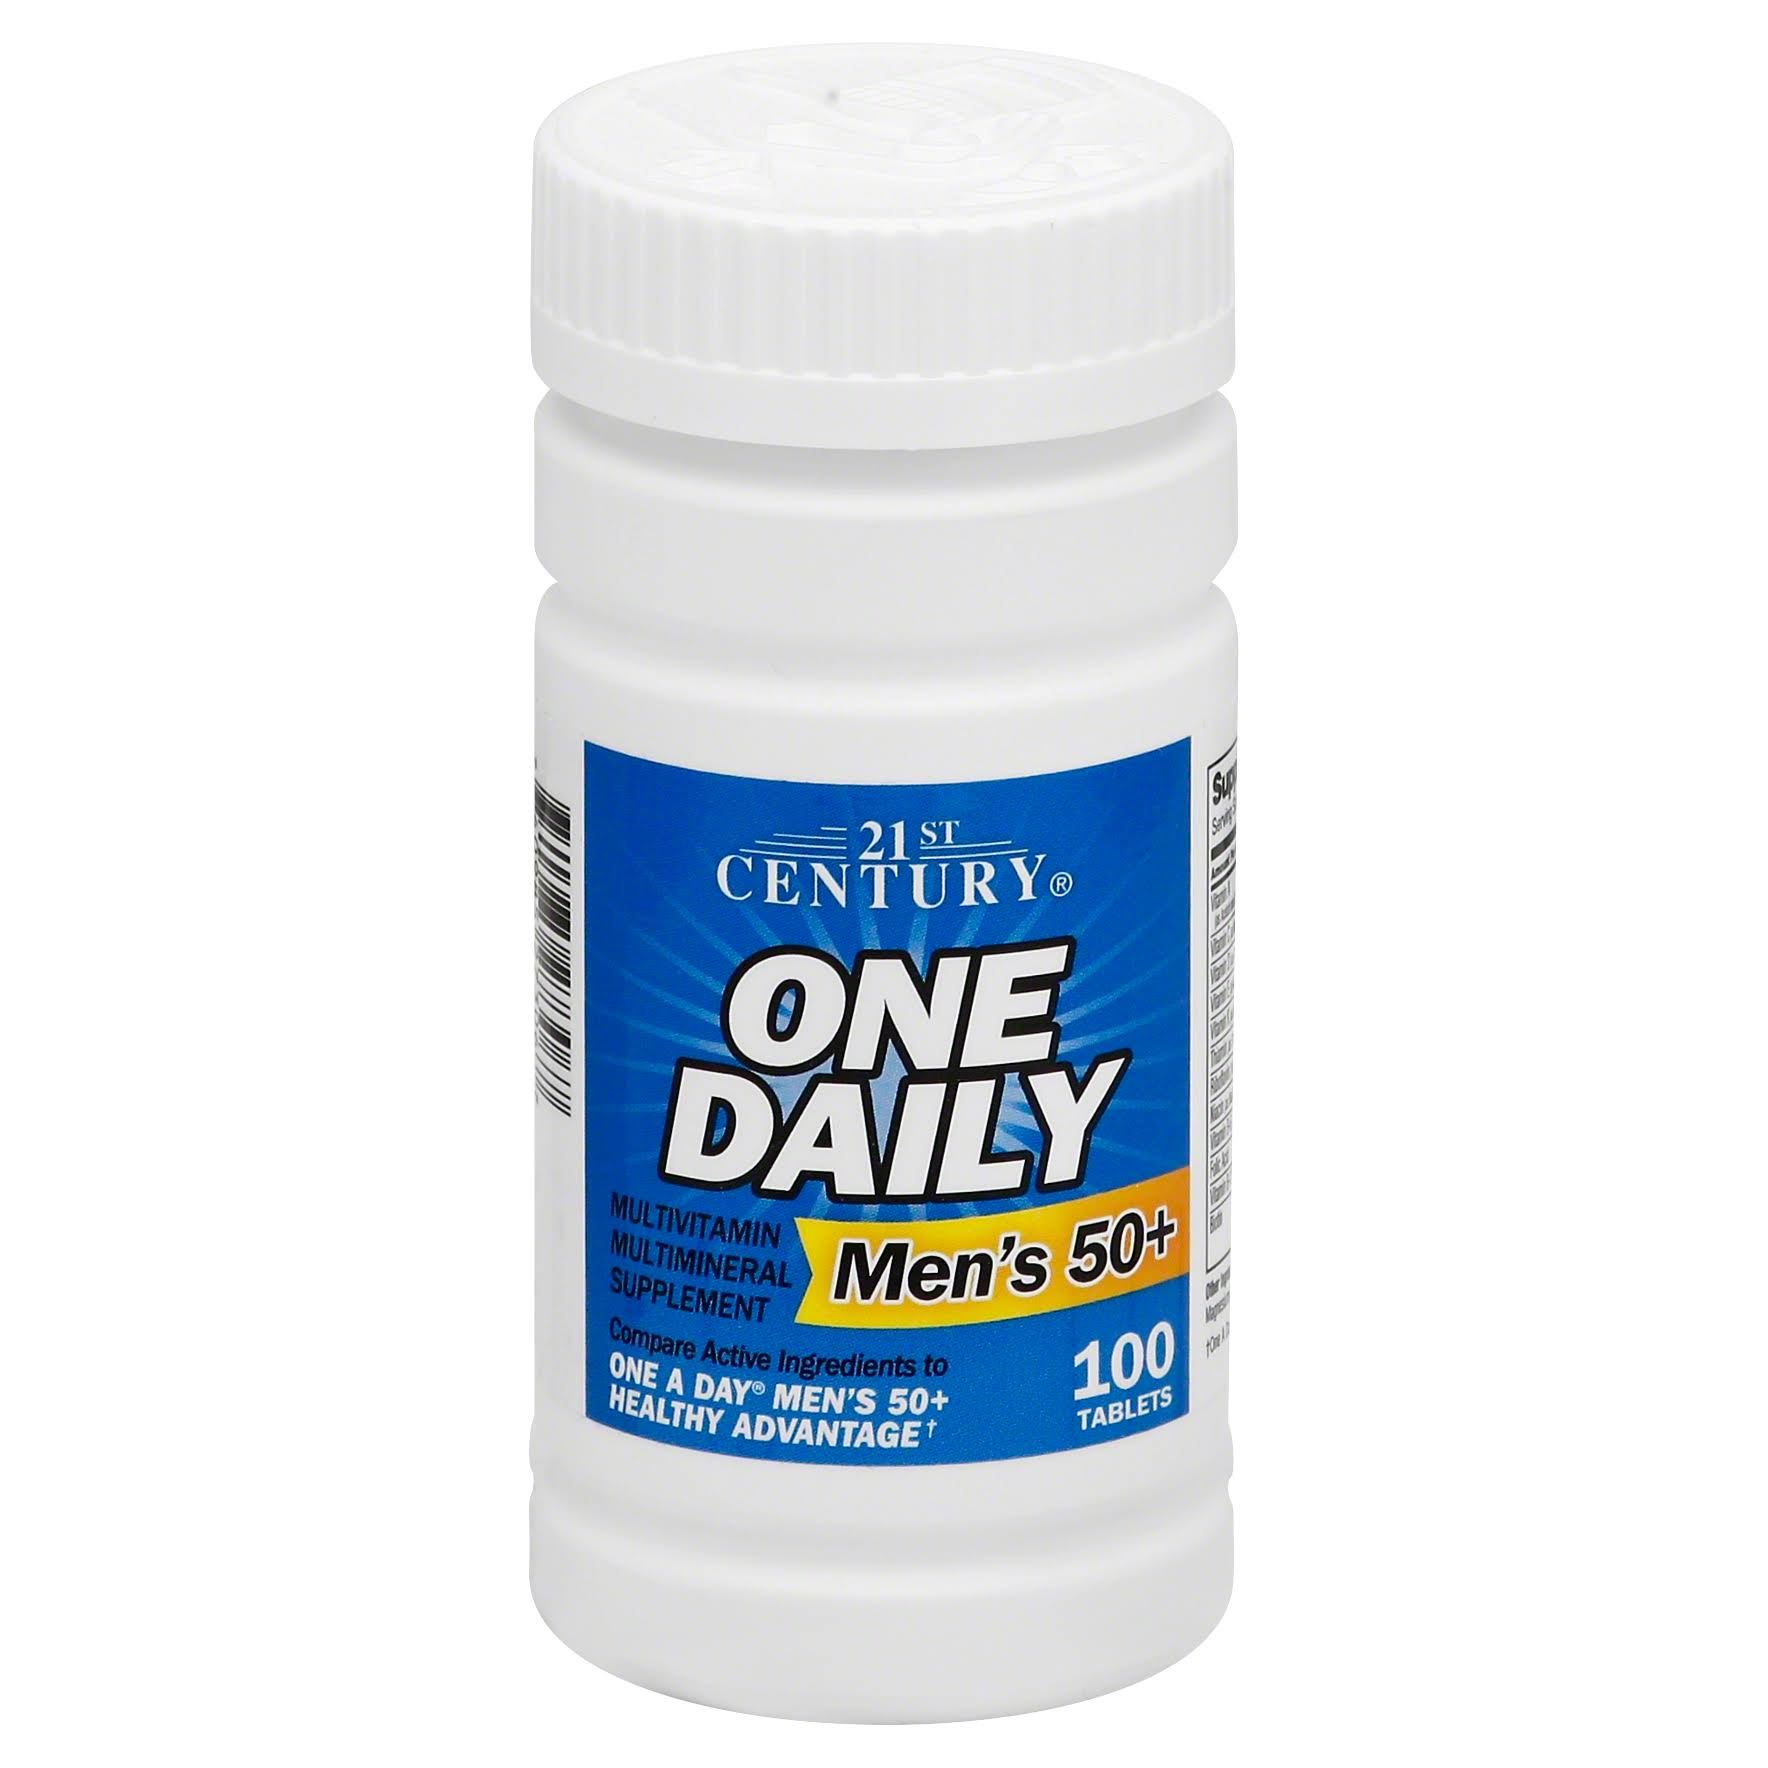 21st Century One Daily Men's 50 Plus Tablet Supplement - 100 Count